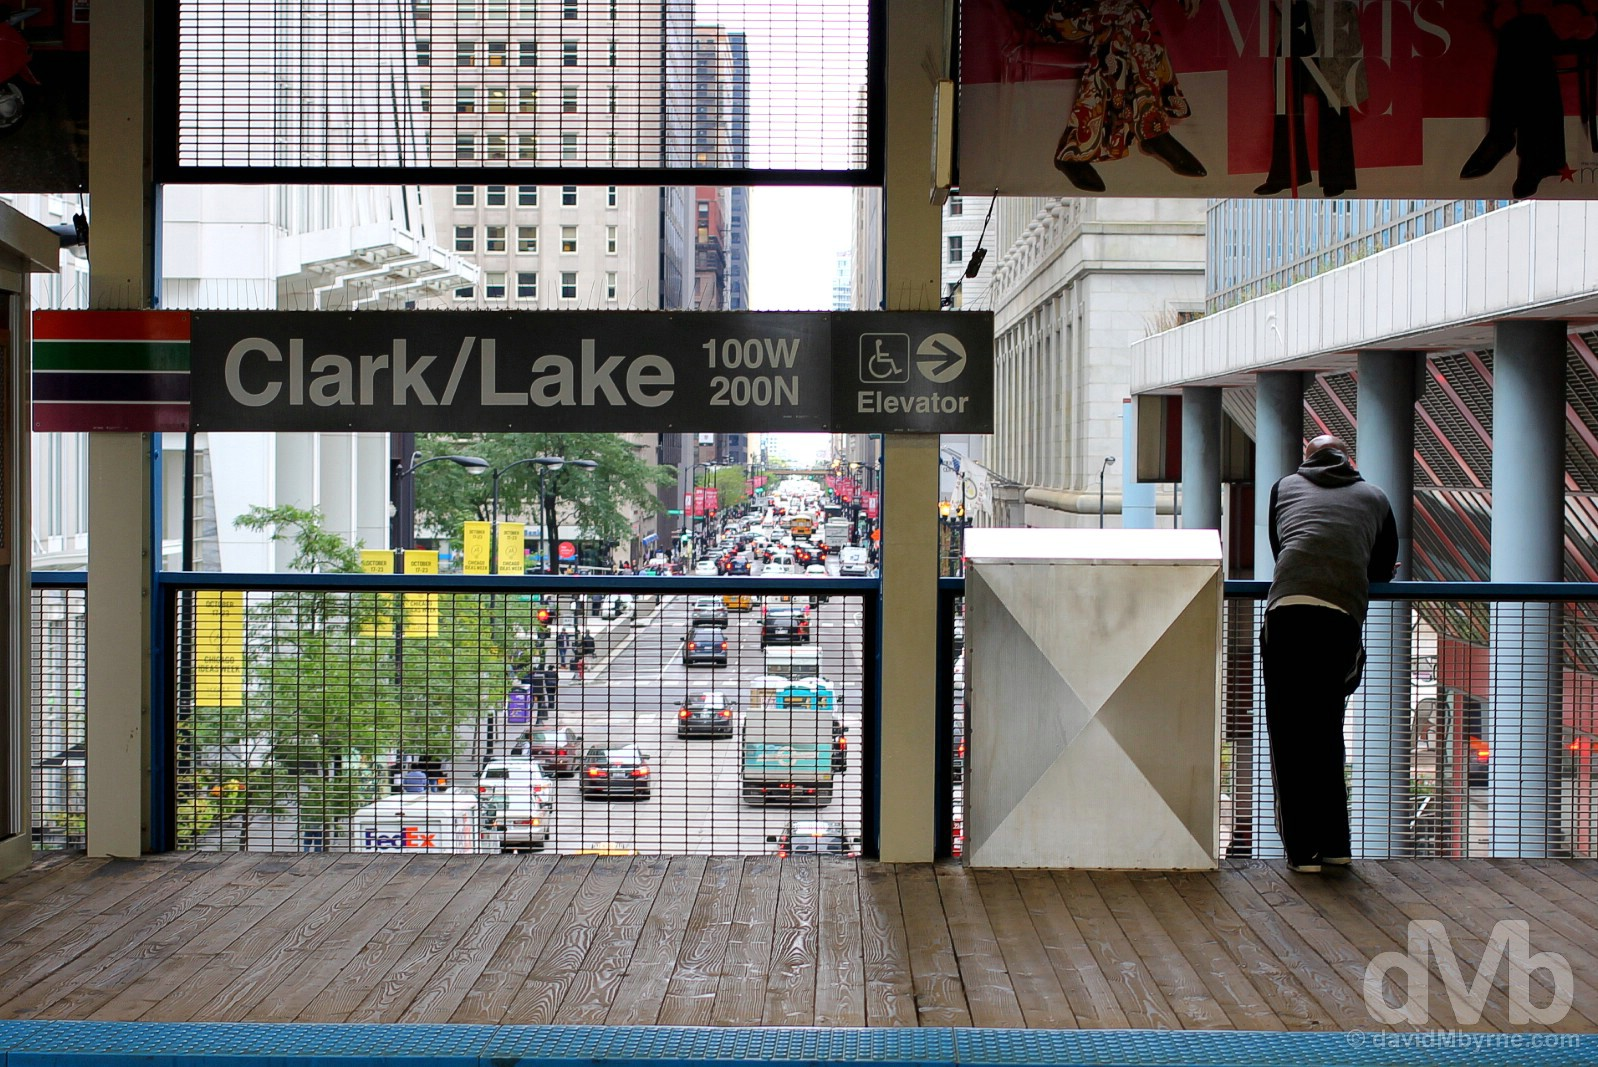 Clark/Lake CTA Station, Downtown, Chicago, Illinois, USA. September 30, 2016.